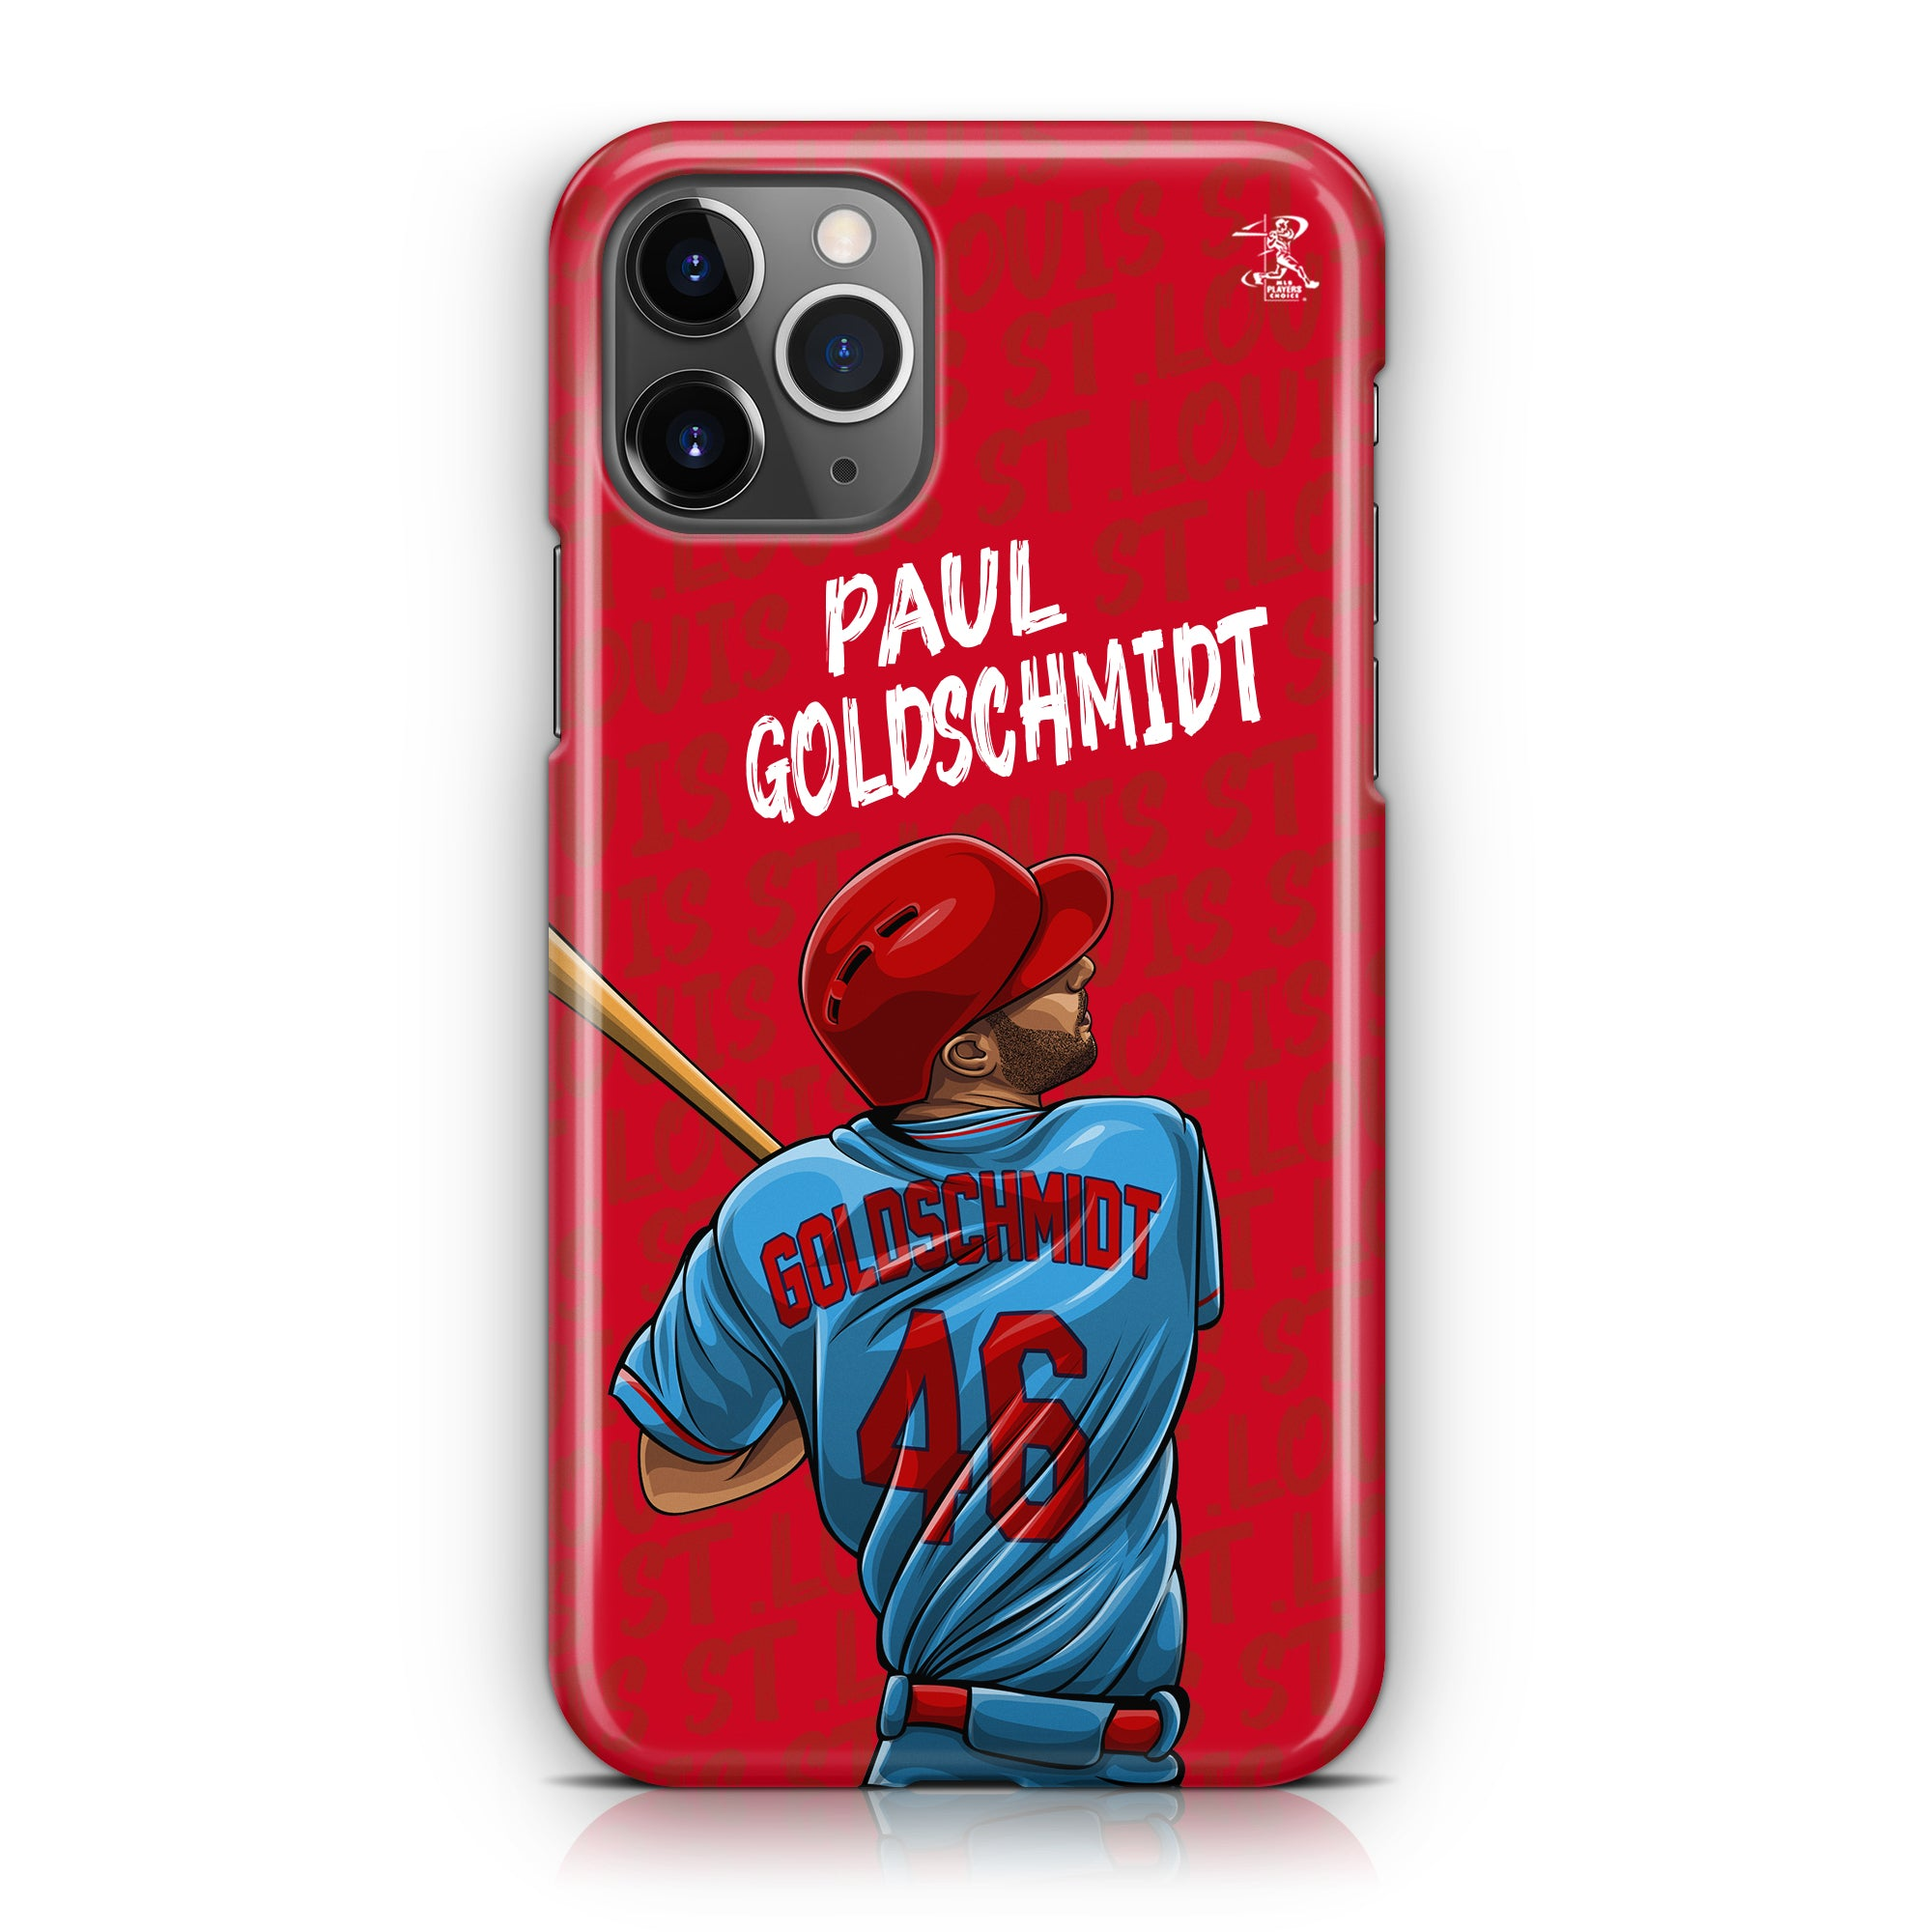 Goldschmidt Star Series 2.0 Case